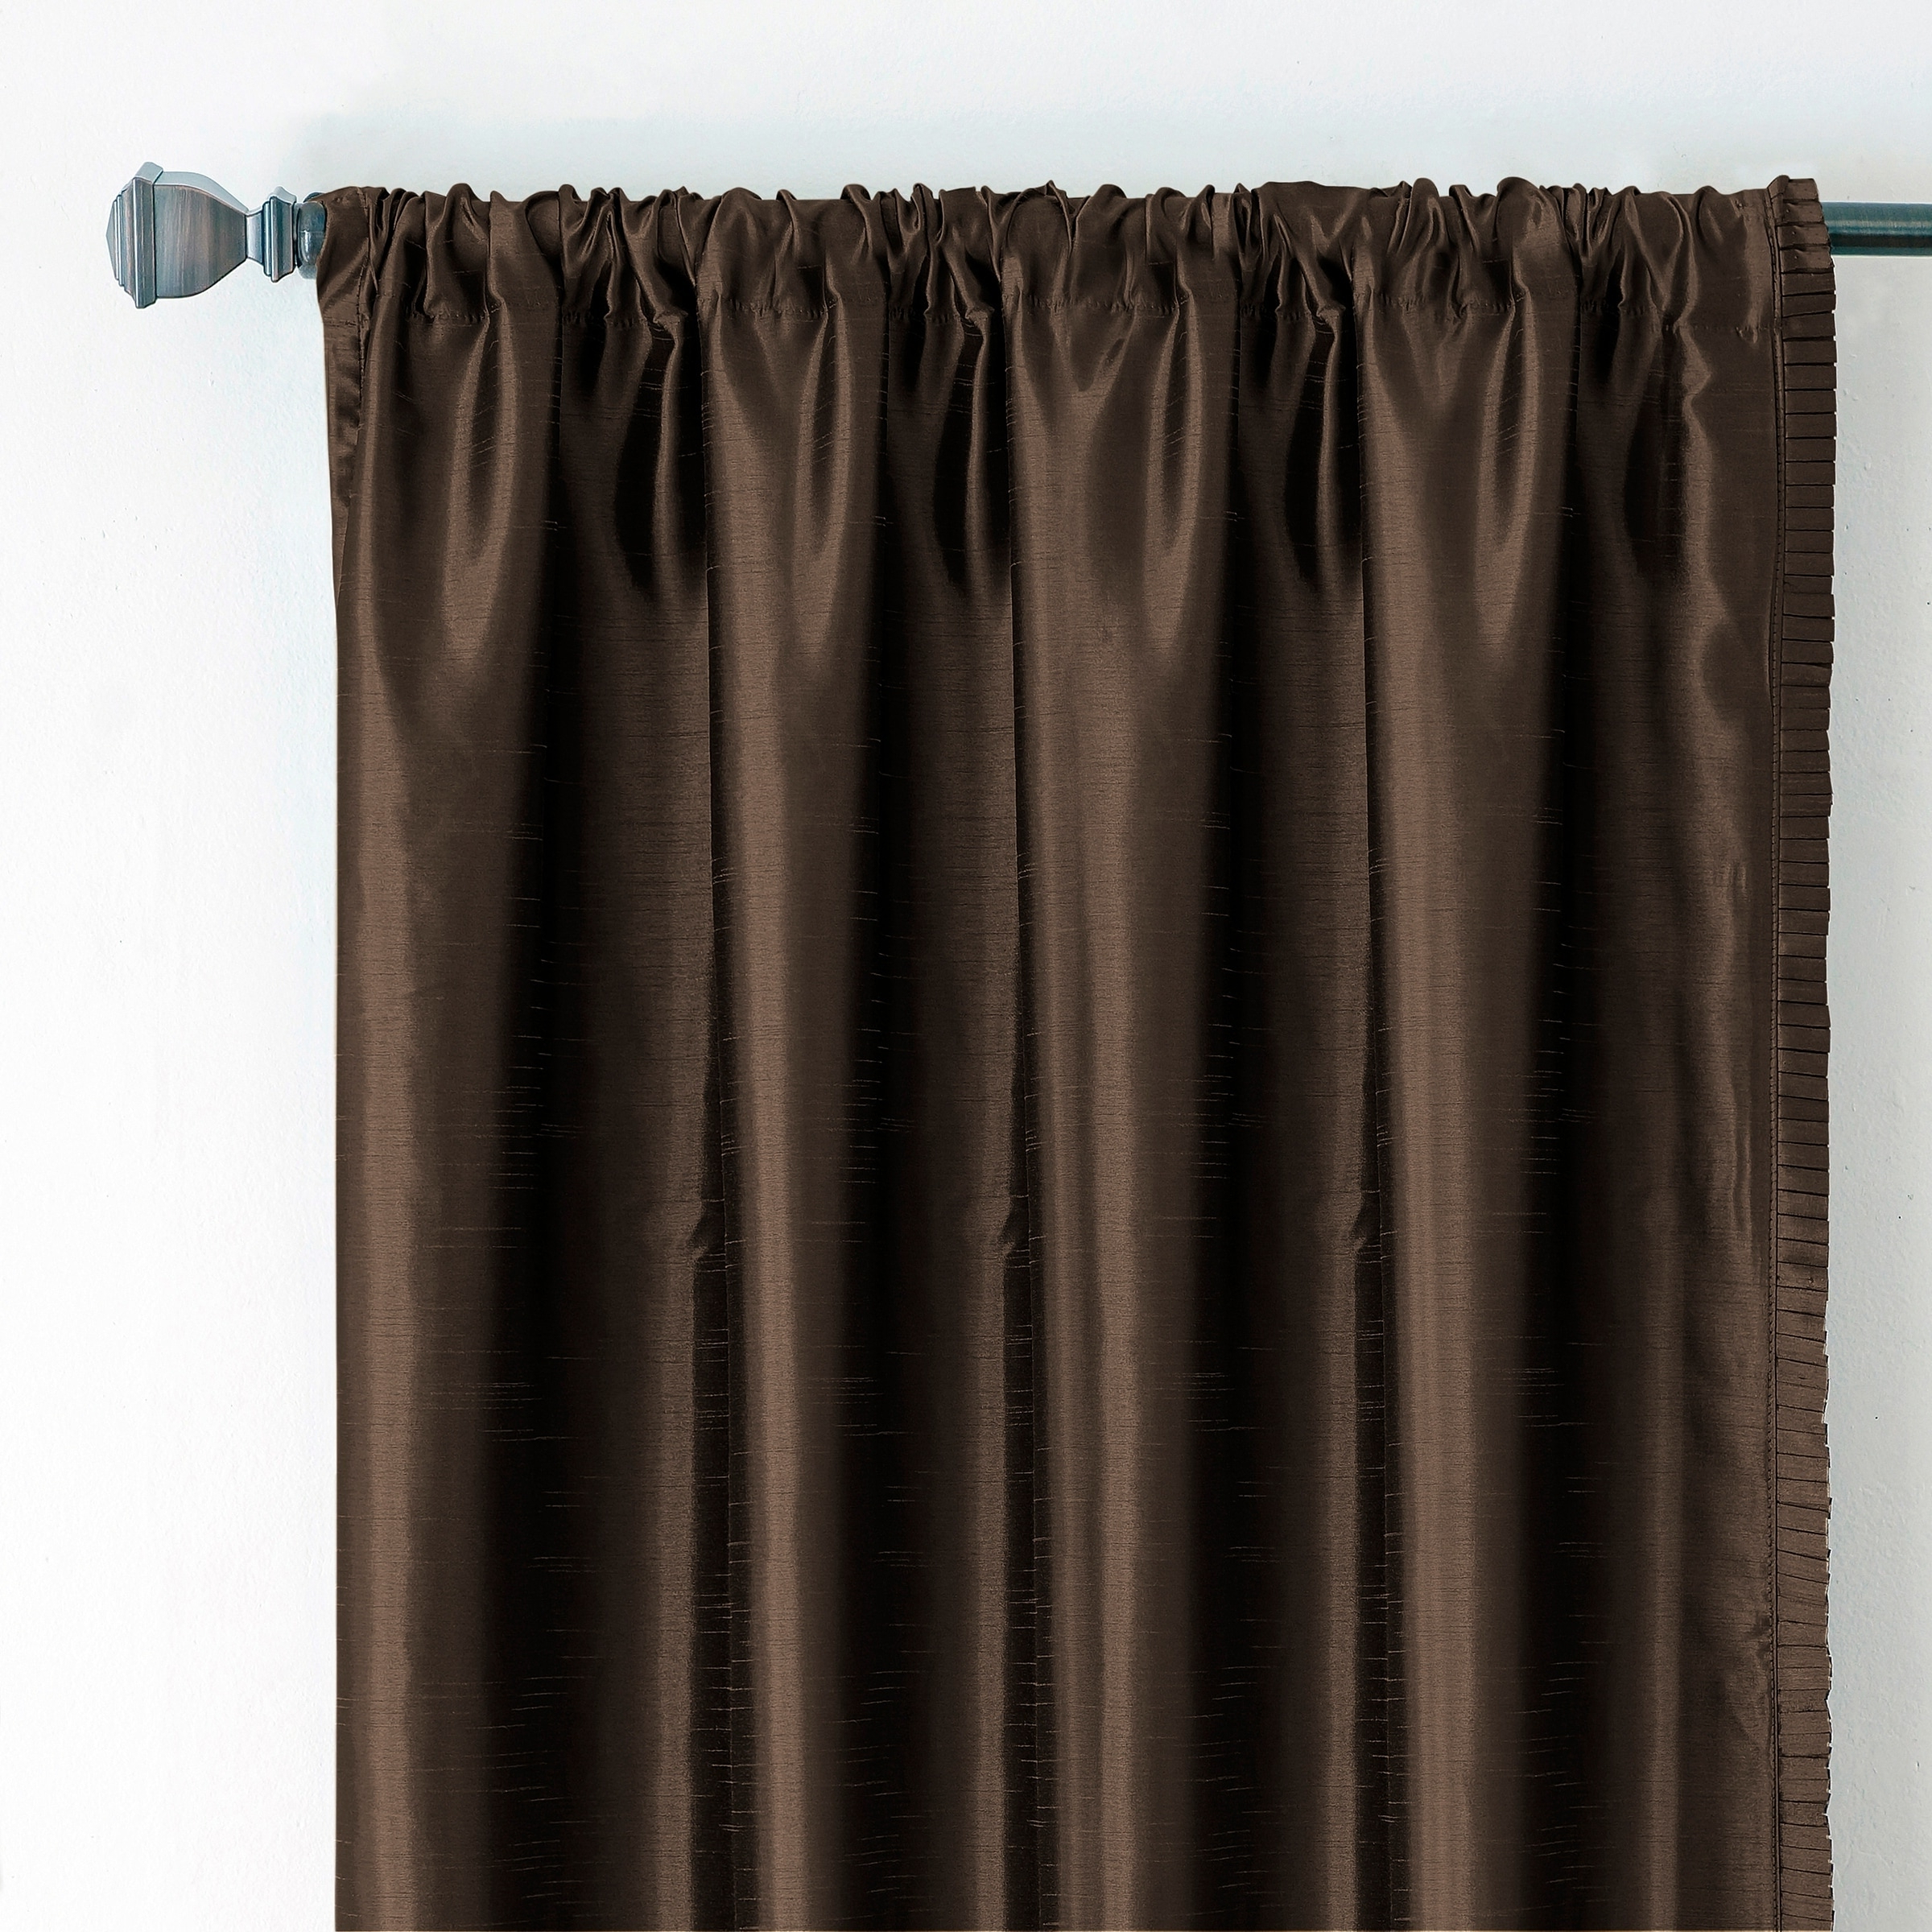 Latest Elrene Versailles Pleated Blackout Curtain Panels Within Elrene Versailles Pleated Blackout Curtain Panel (View 13 of 20)